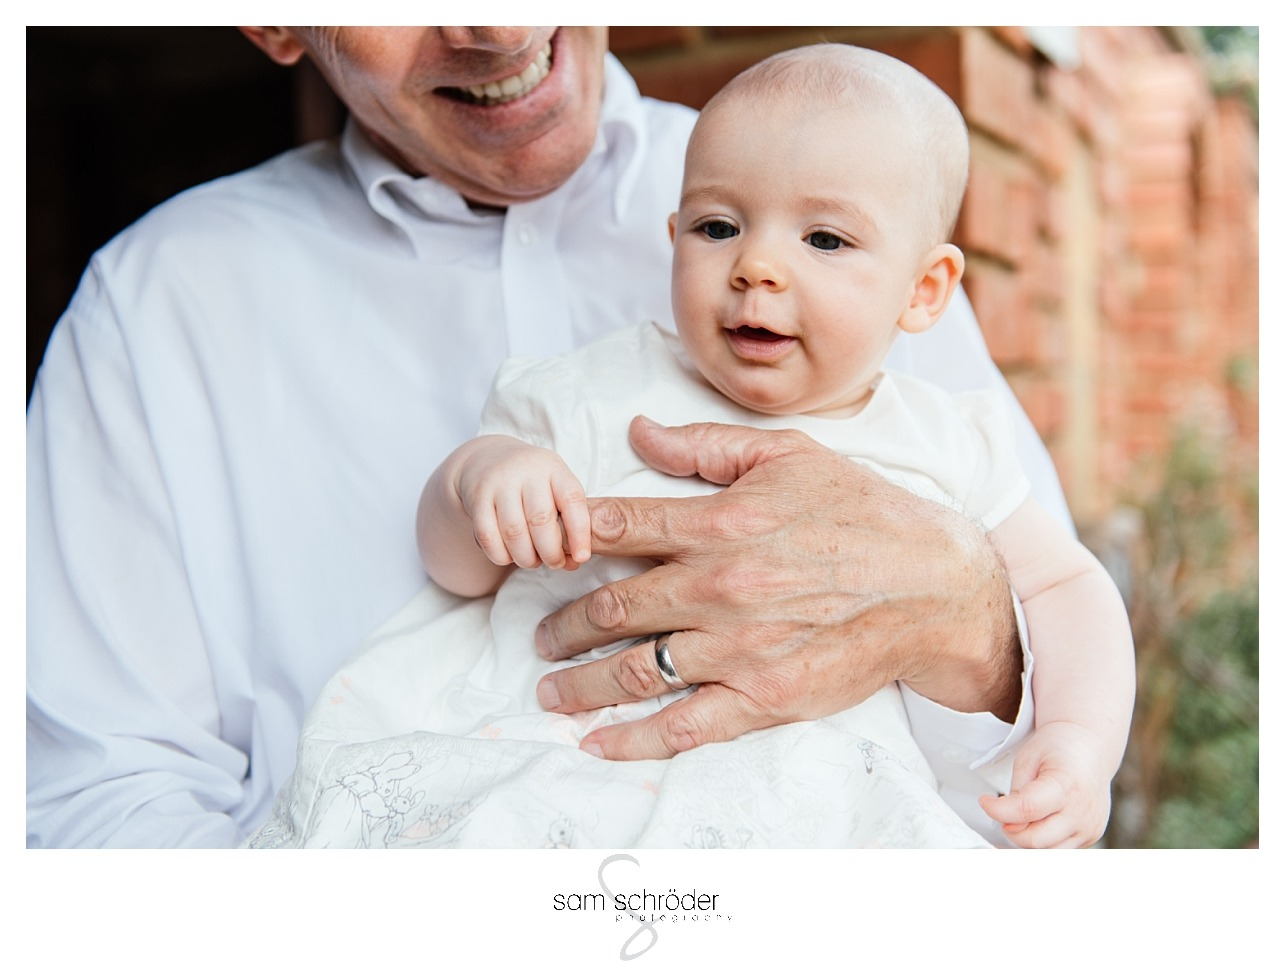 gauteng-newborn-photographer_-christening_-baby-photography_lifestyle-photography_pretoria-photographer_-sam-schroder-photography_0015